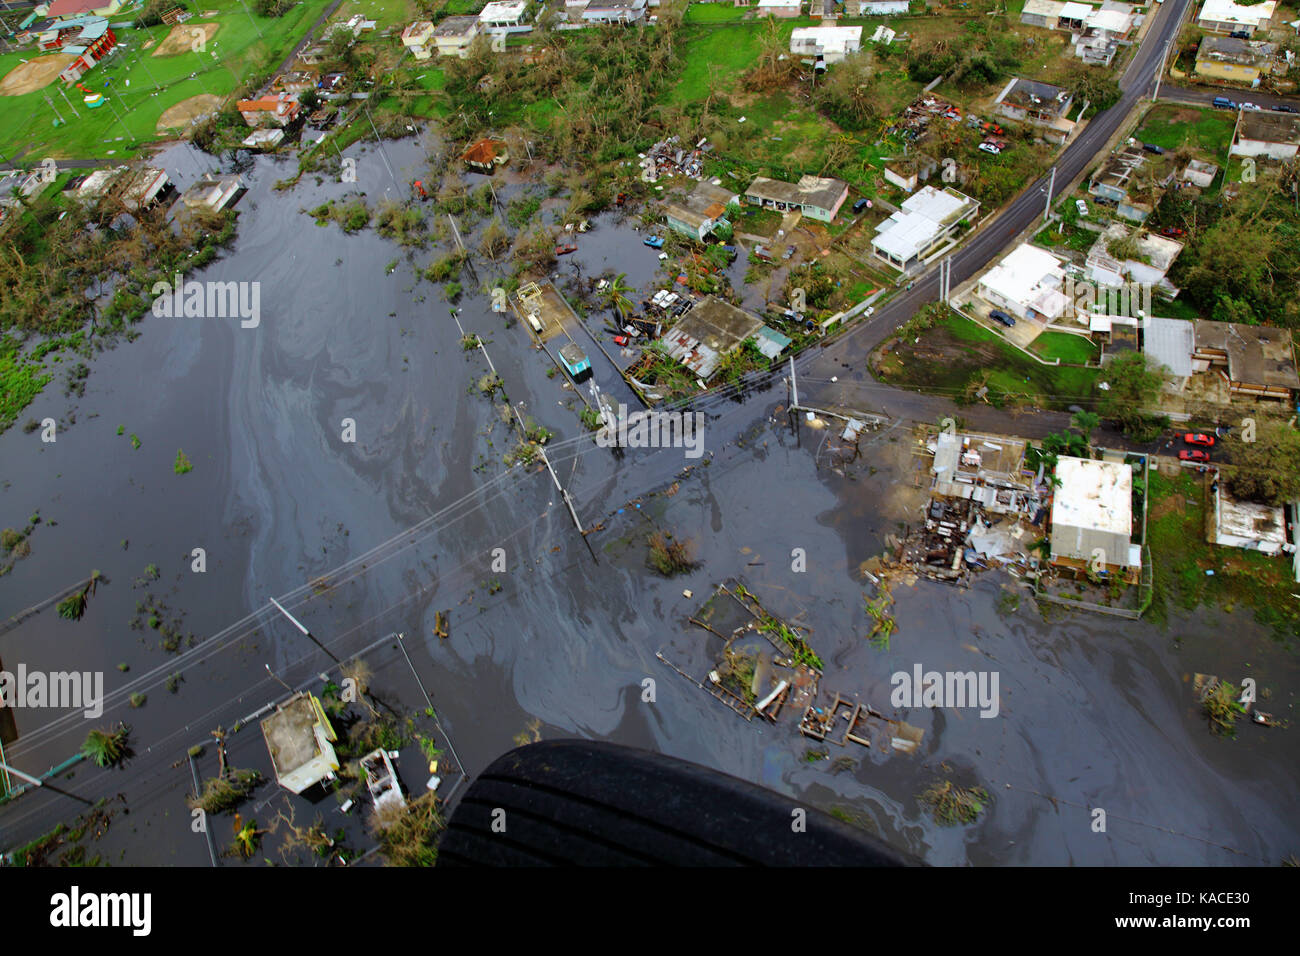 Damage caused by Hurricane Maria in Puerto Rico - Stock Image